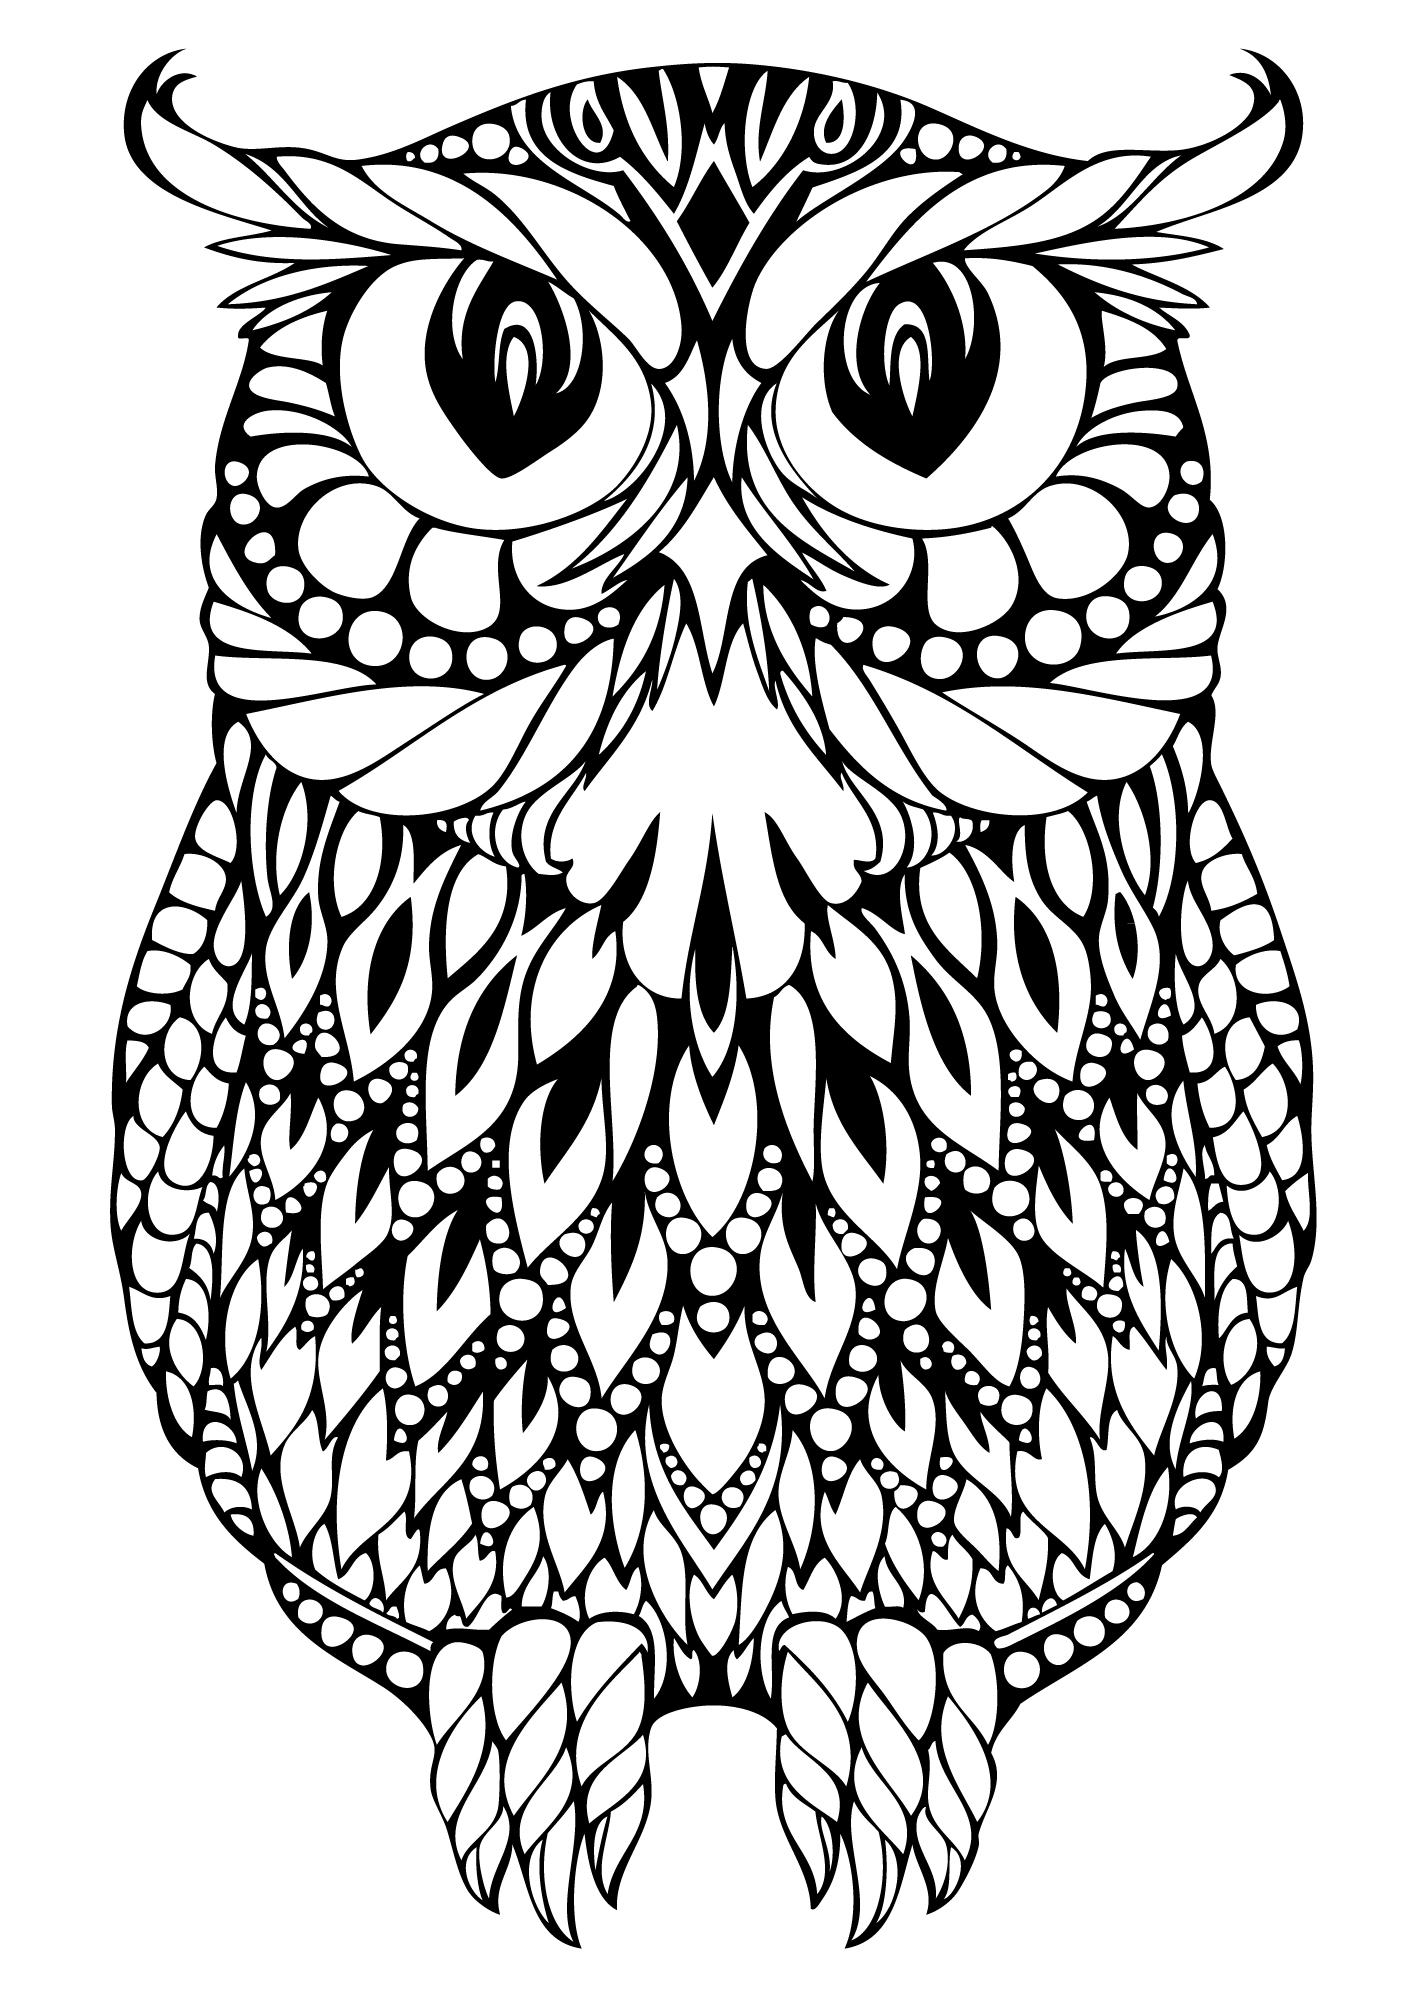 Adorable Animals Clipart Coloring Pages Difficult to Color Gallery Of Snowflake Coloring Pages for Adults Coloring Pages Inspiring Printable